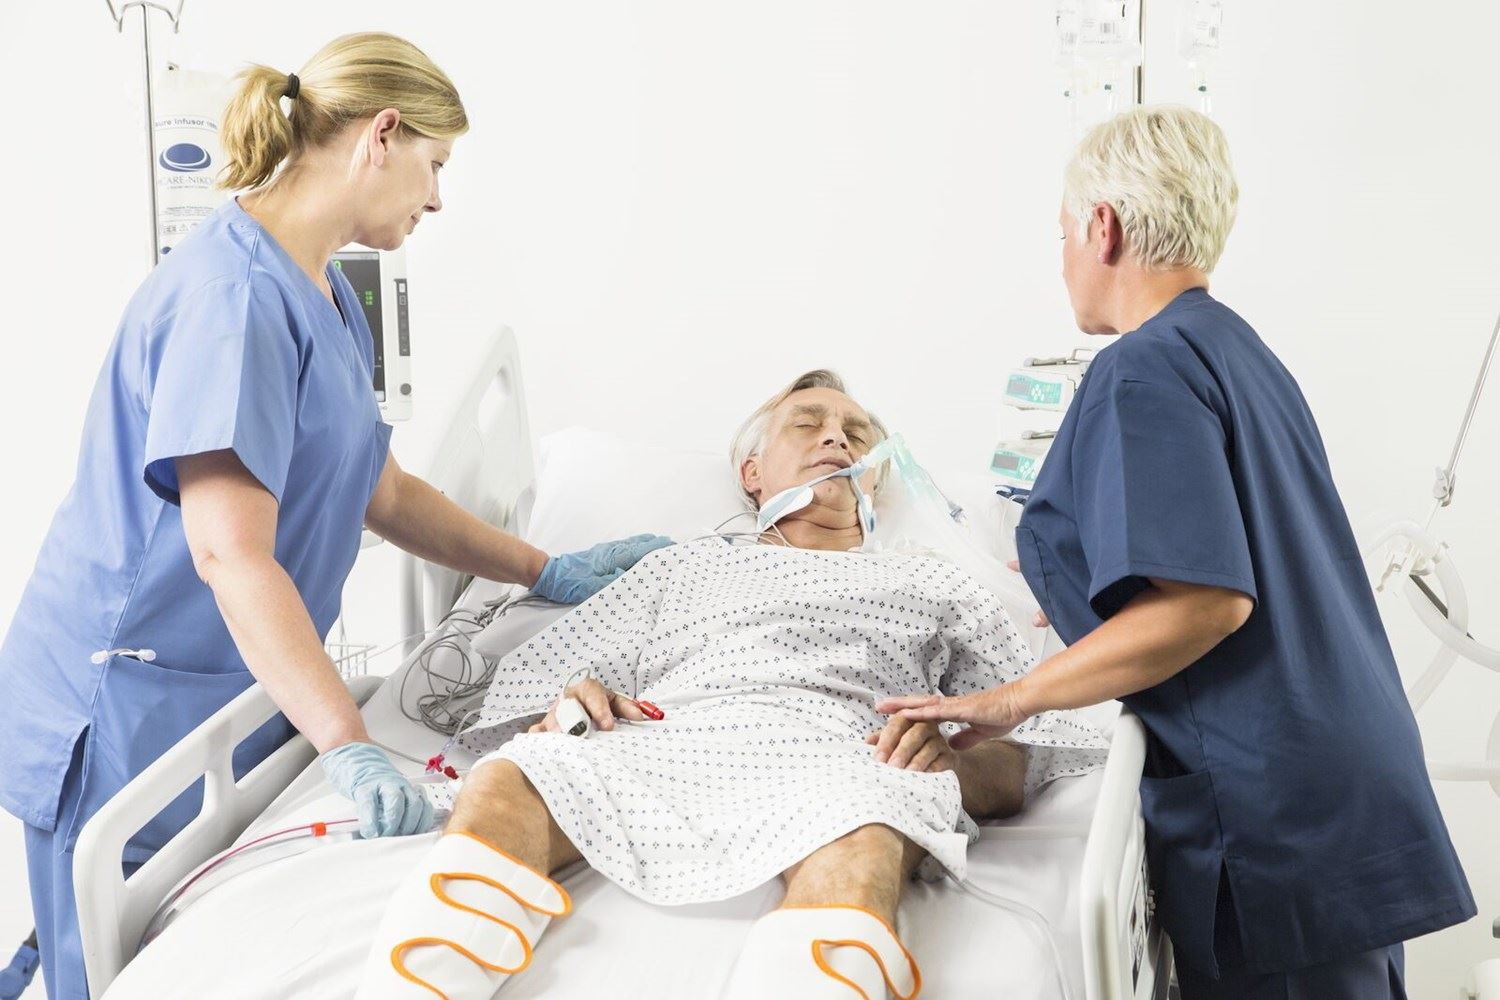 Why are ICU patients particularly vulnerable to VTE events?